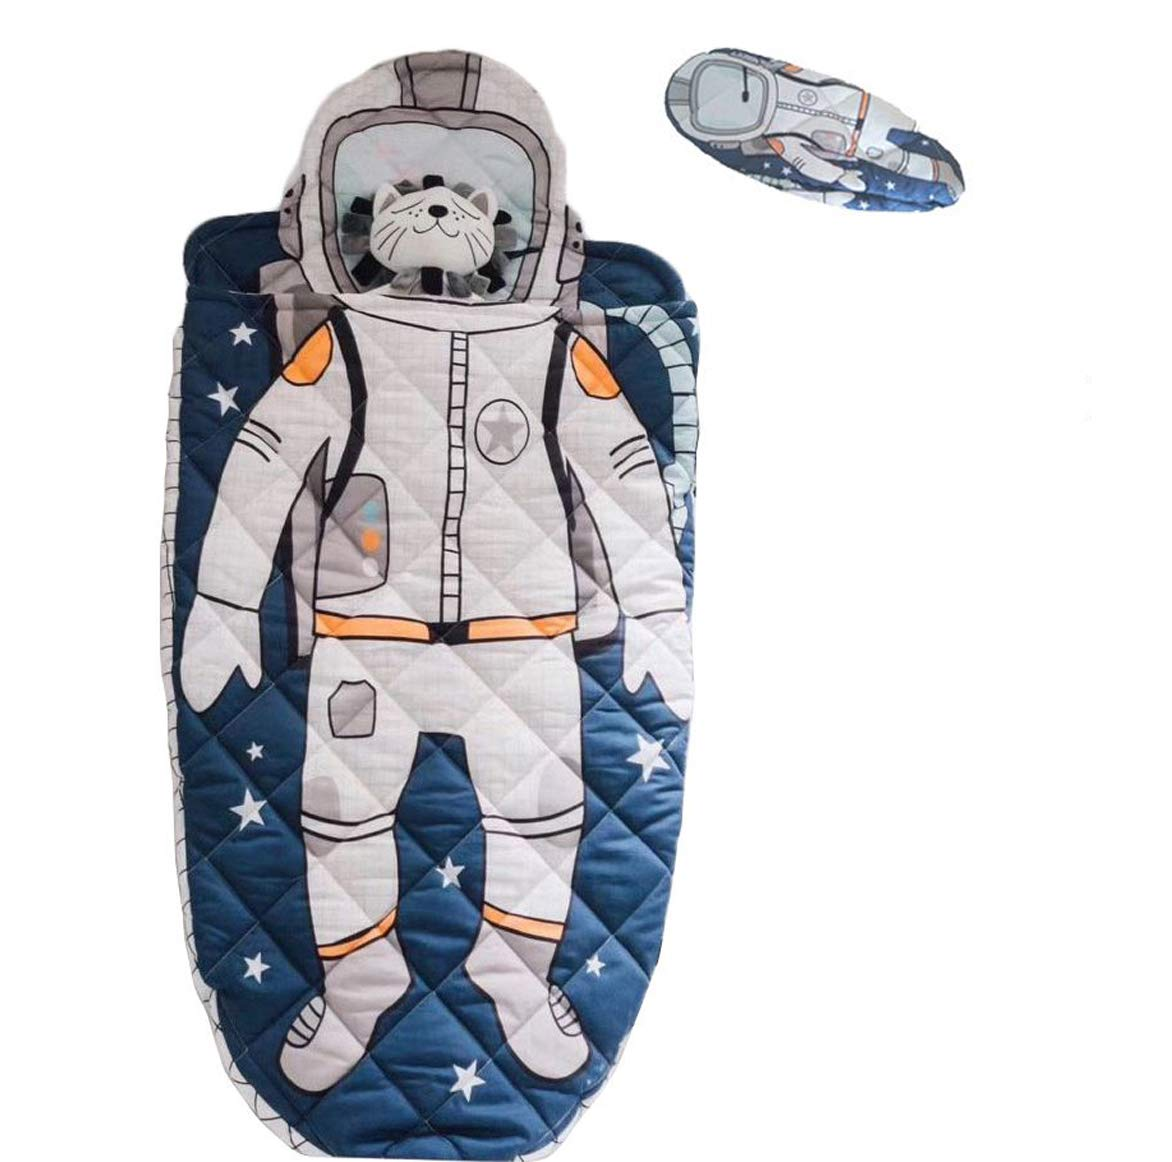 YAYIDAY Toddler Sleeping Bag with Pillow - Kick-Proof Slumber Bag for Kids Nursery - 100% Cotton Quilted Blue Nap Mat Blanket Soft Warm Boy Spaceman Astronaut Print by YAYIDAY